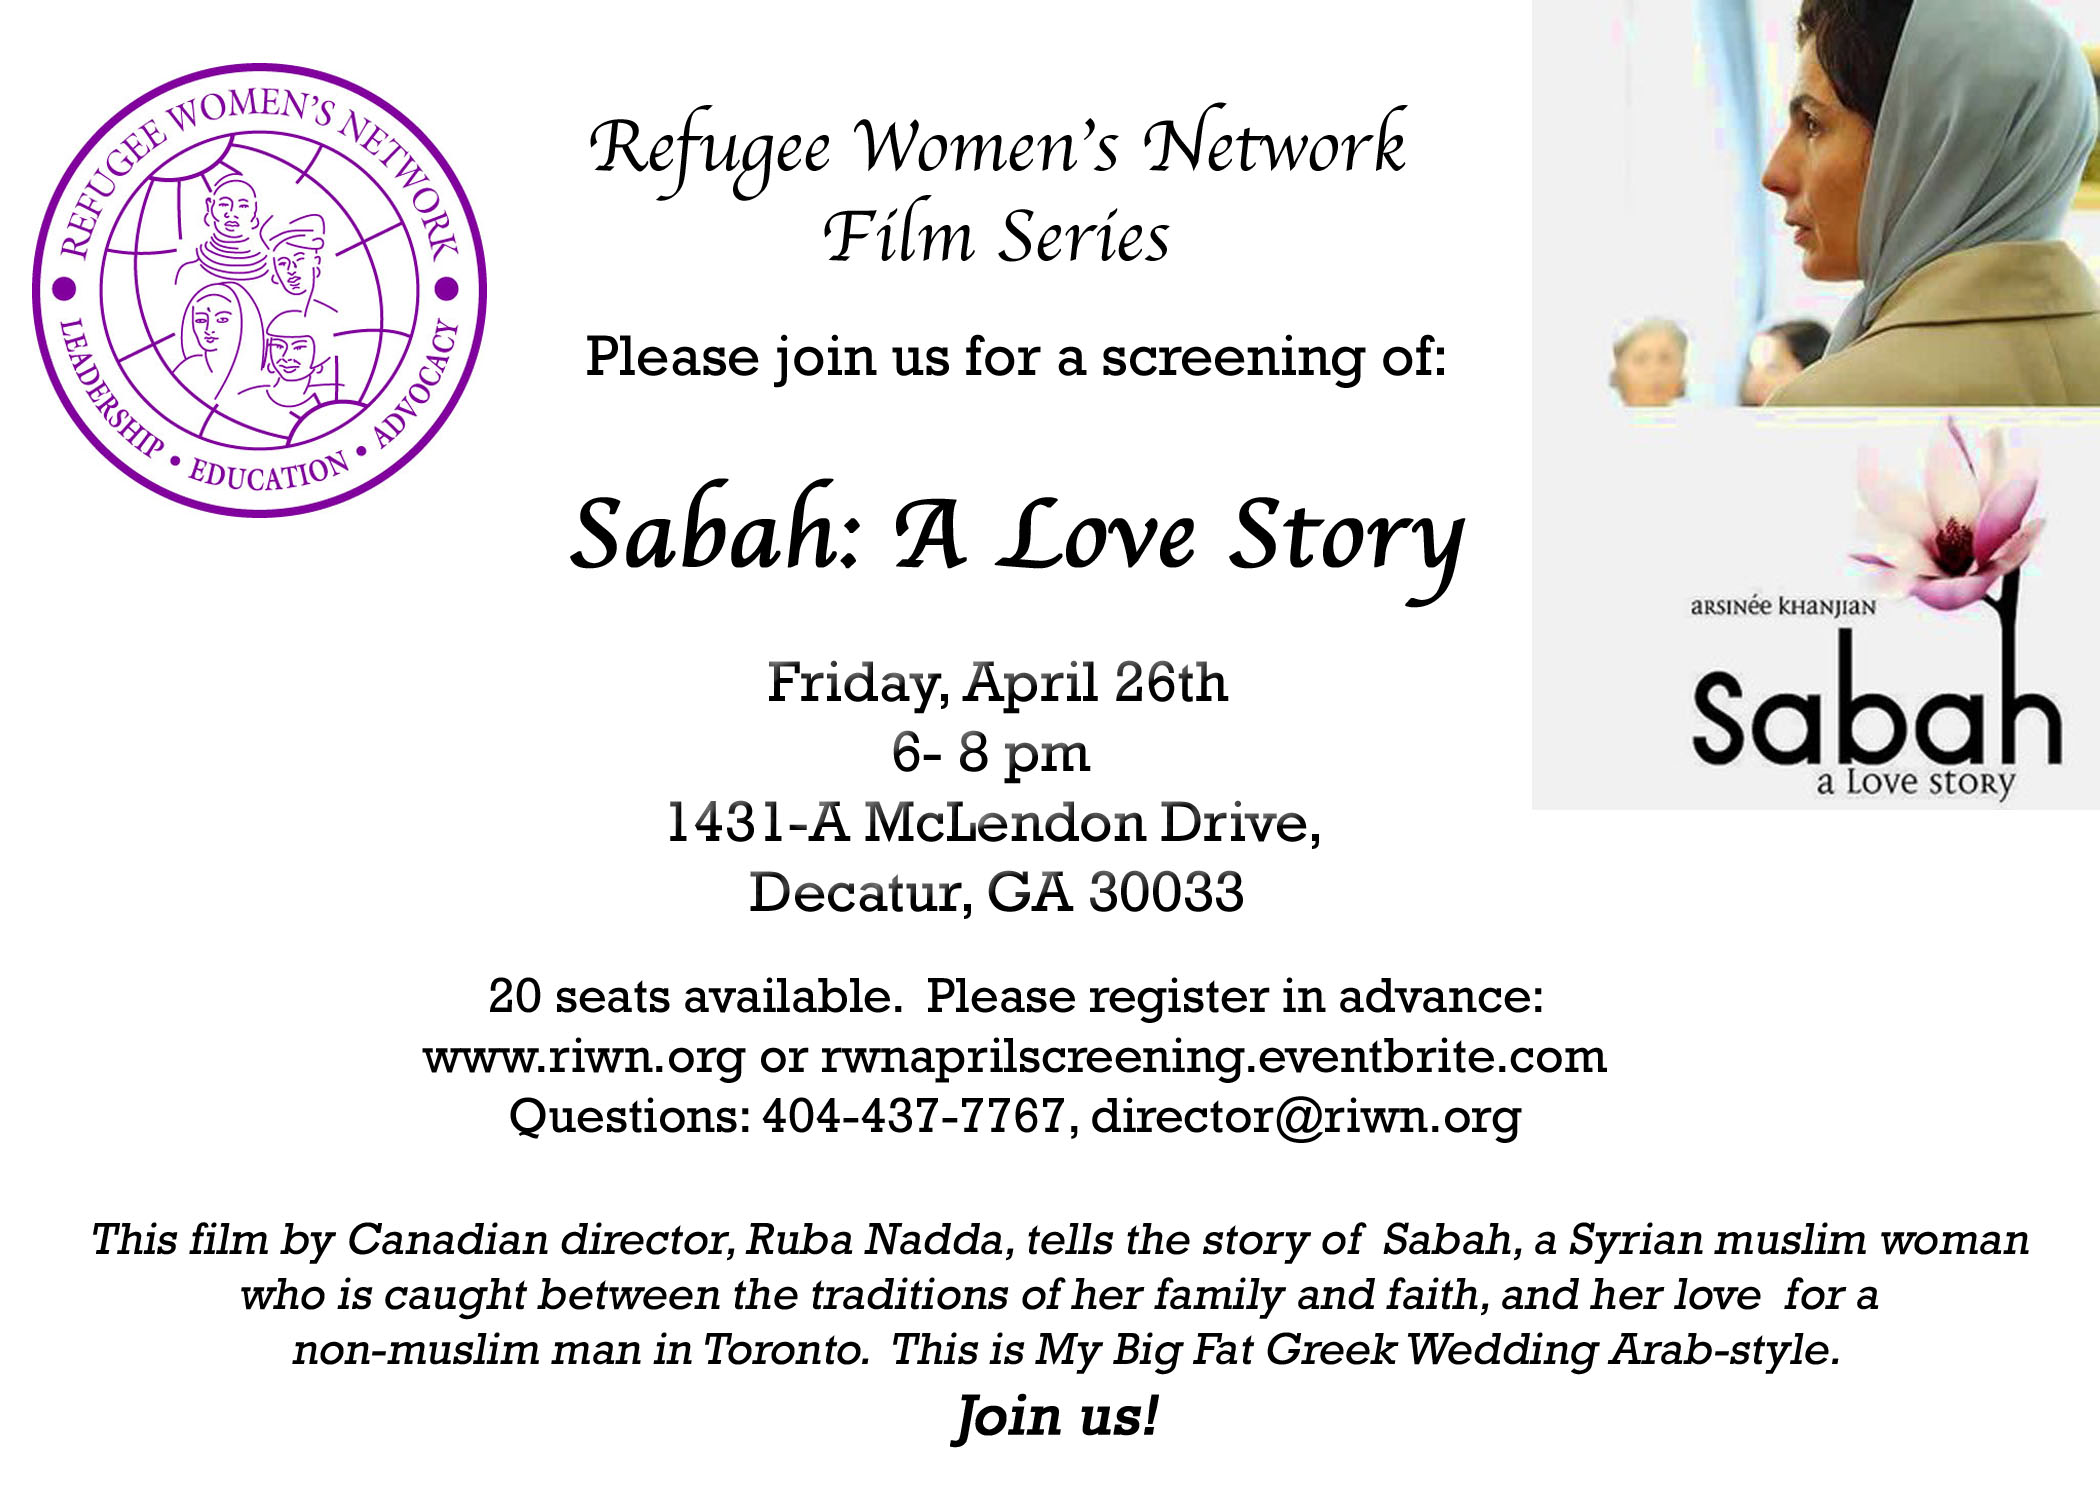 Flyer for screening of Sabah: A Love Story